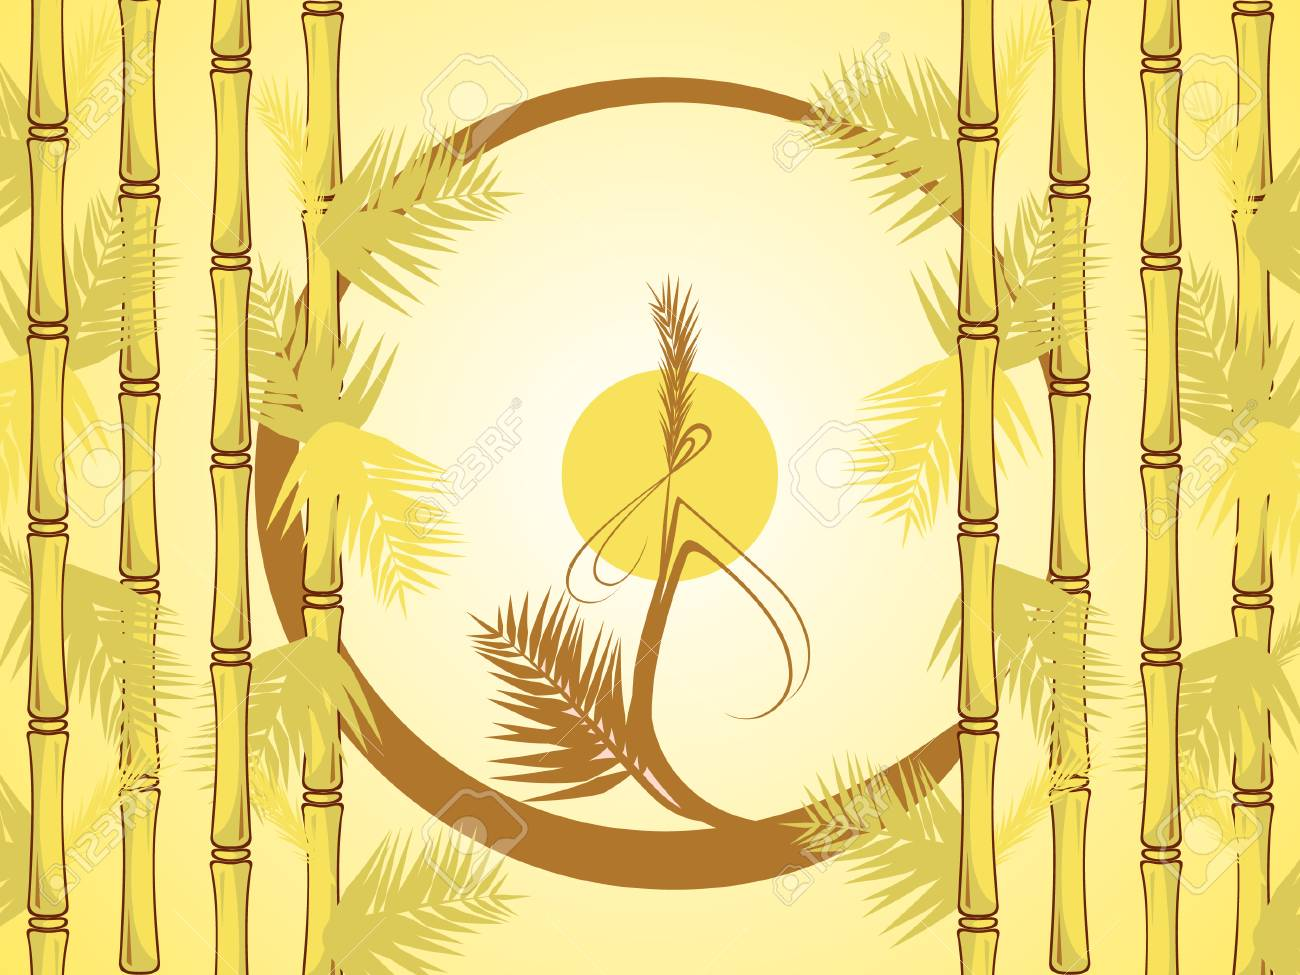 the bamboo branch in the form of the circle. Stock Vector - 7842760